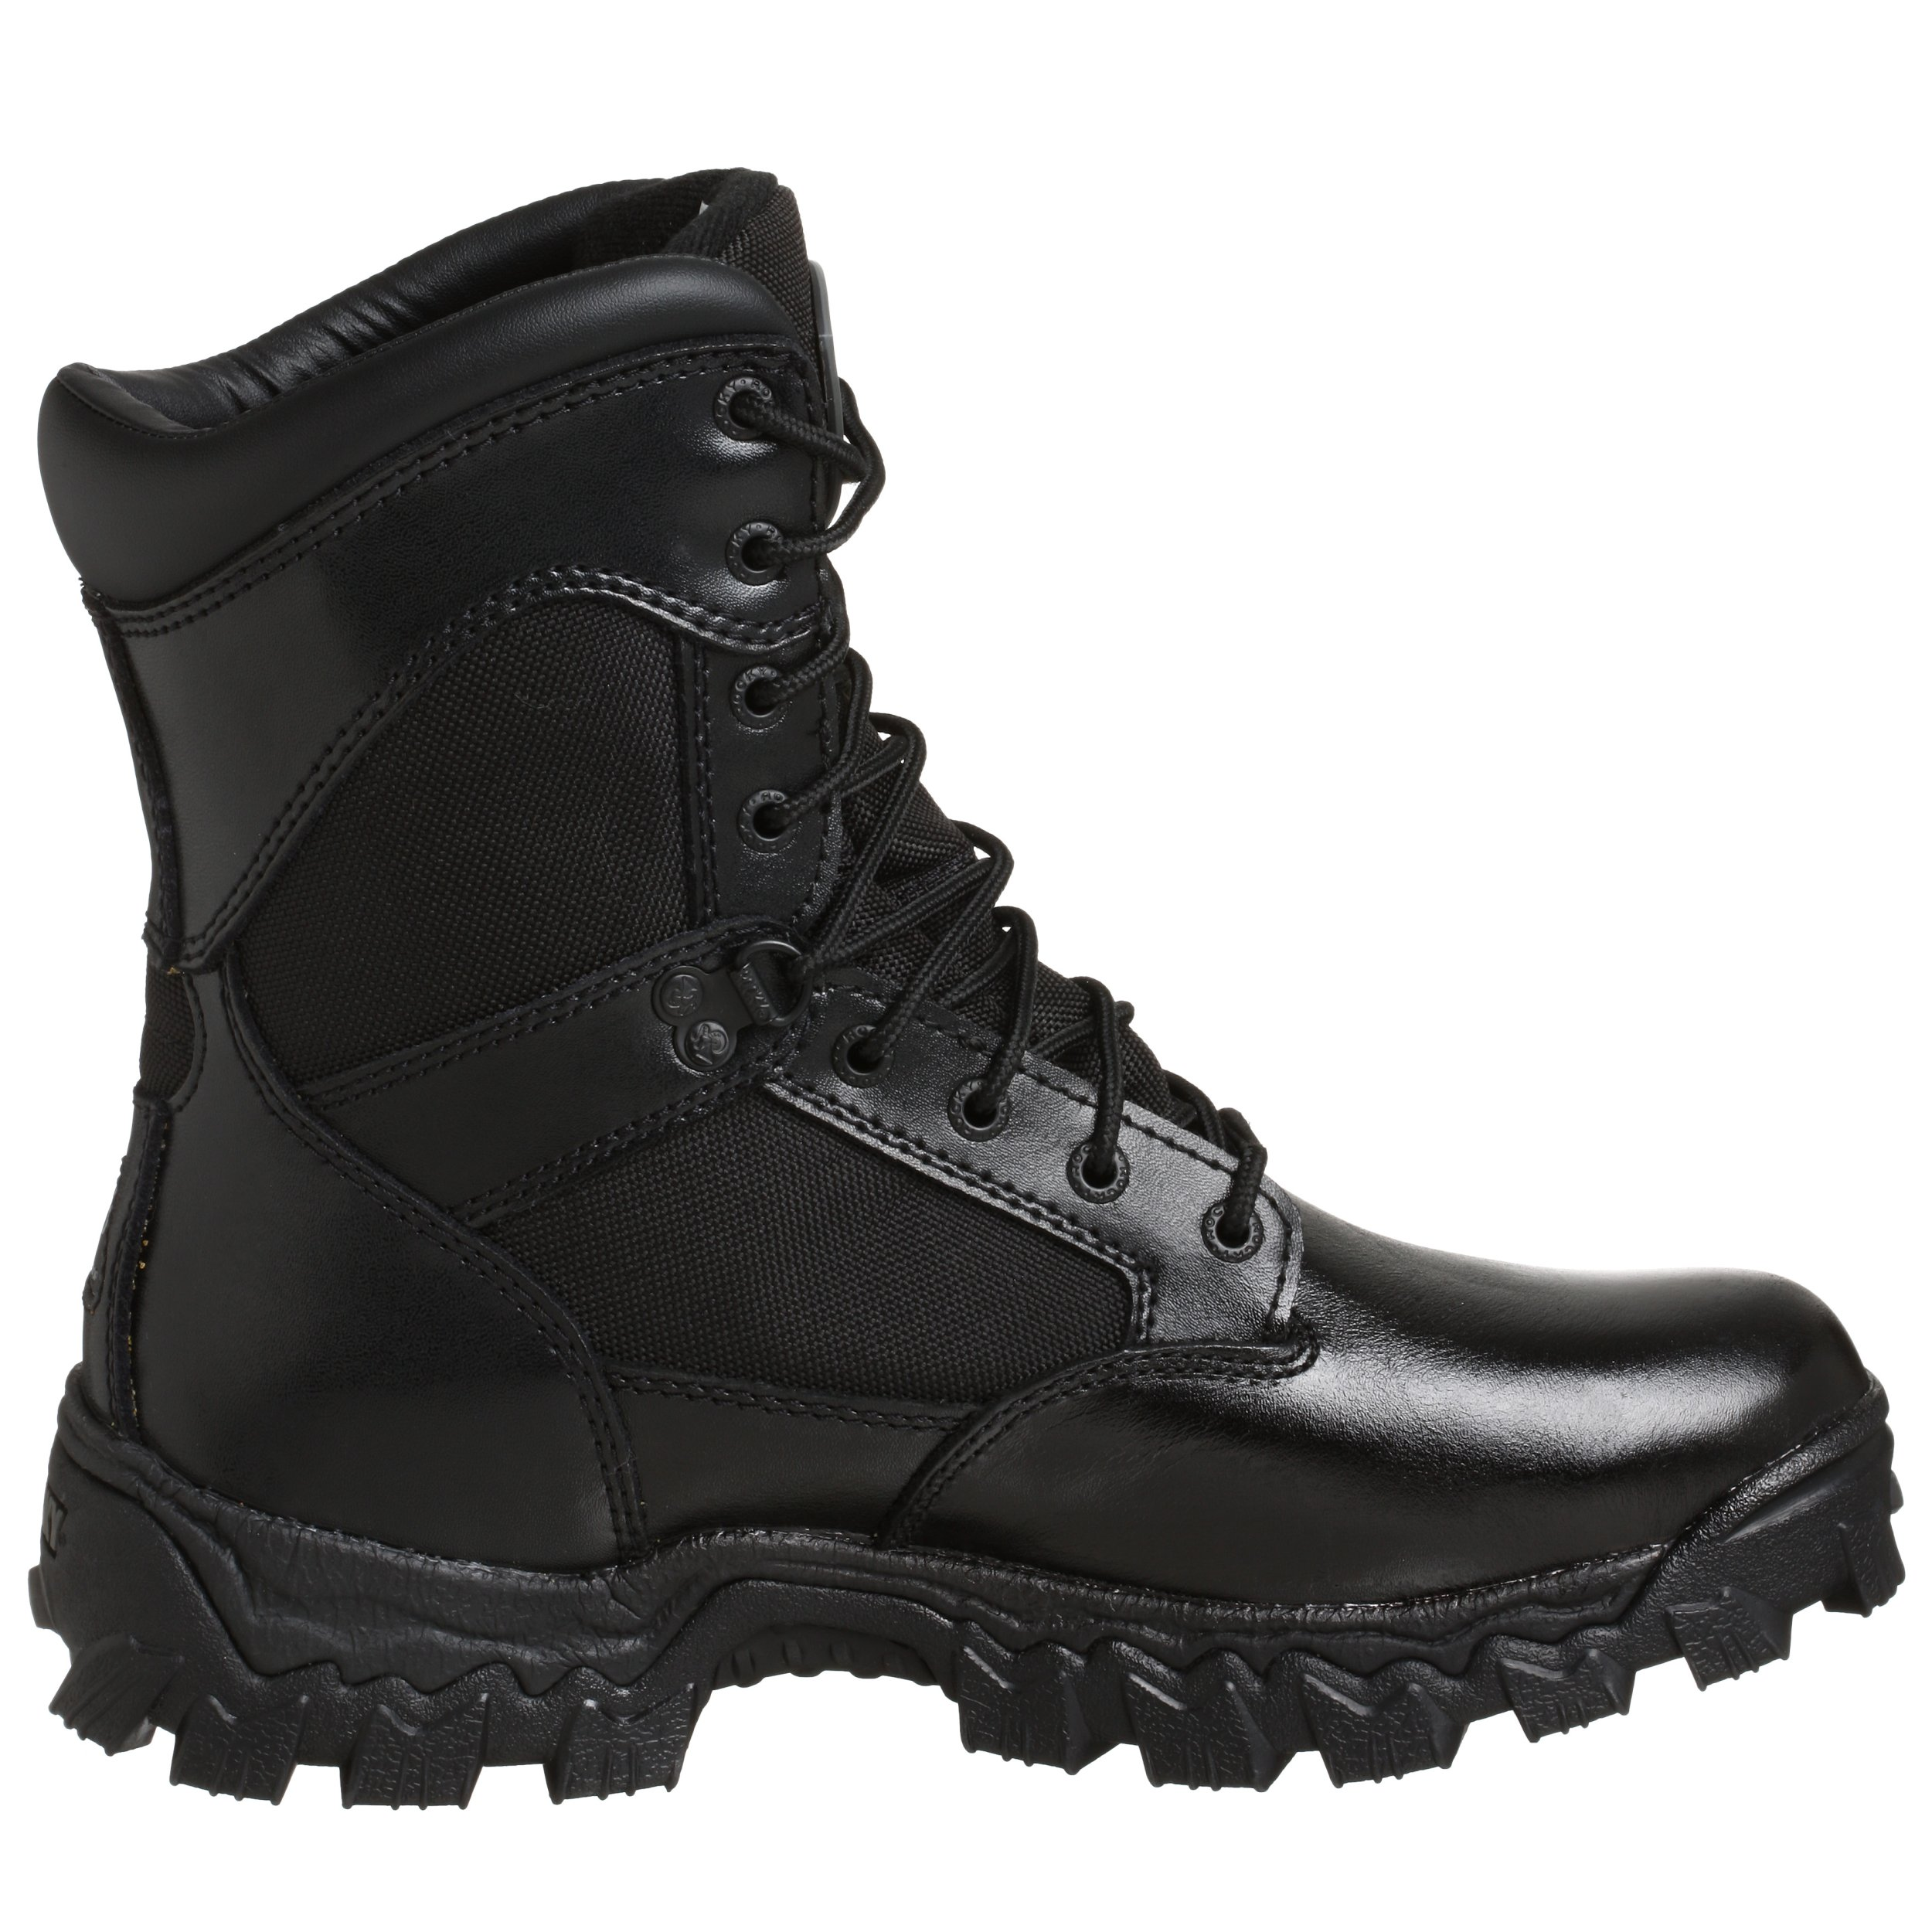 Rocky Duty Men's Alpha Force 8'' Swat Boot,Black,11.5 M by Rocky (Image #6)